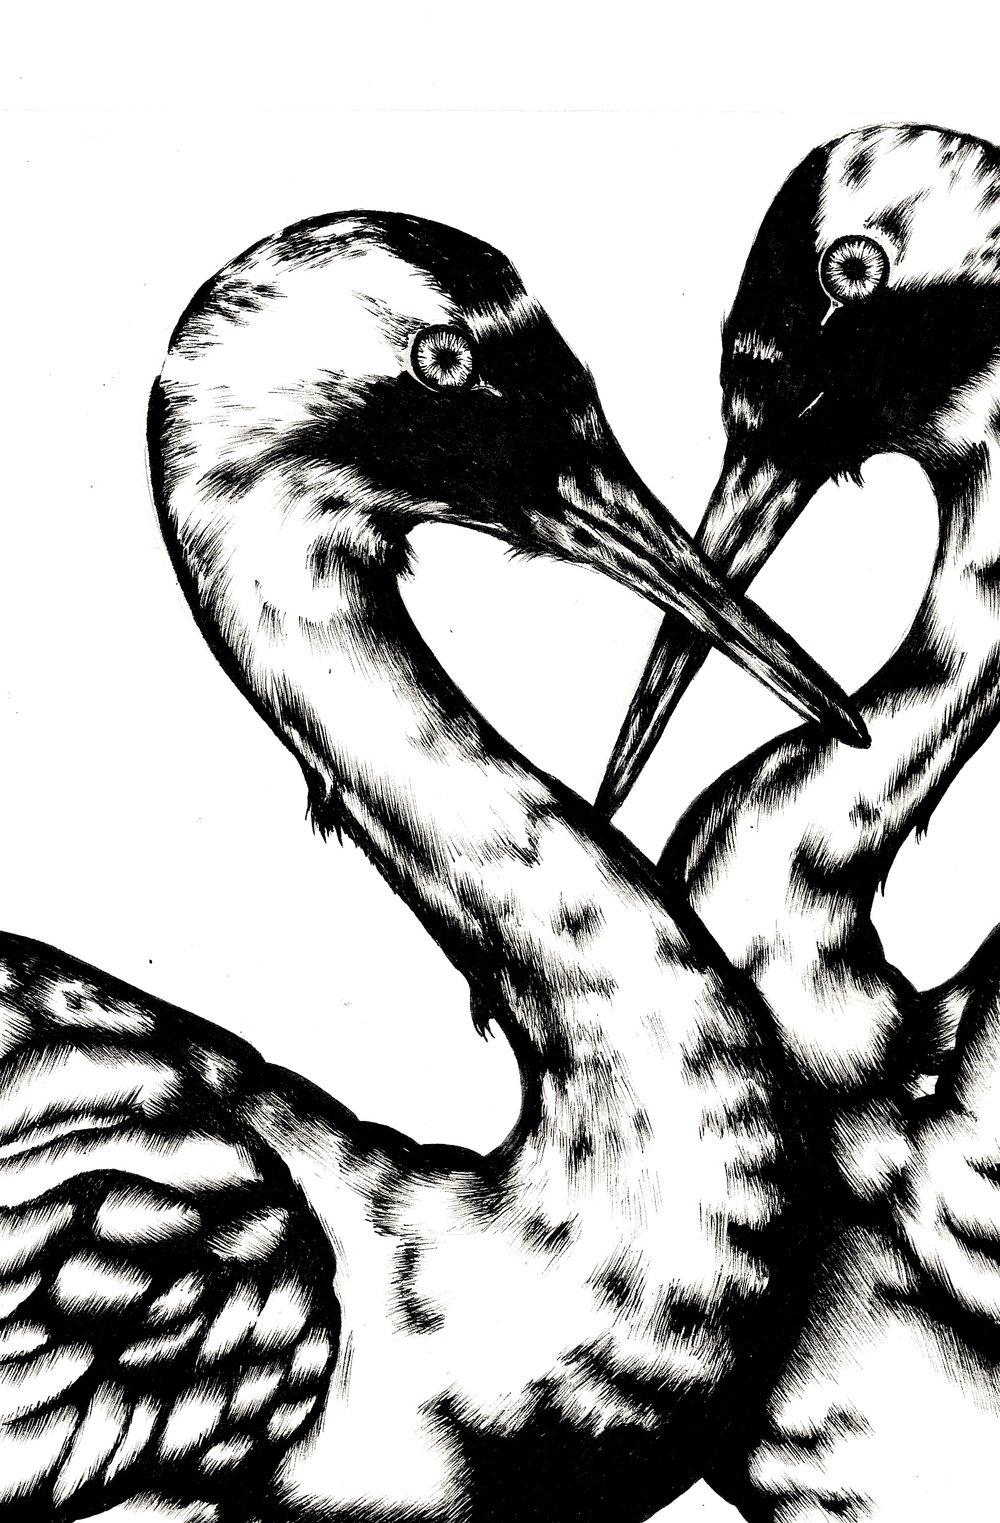 Whooping Cranes  (2016)  Birds that Stay Together, Forever   Ink